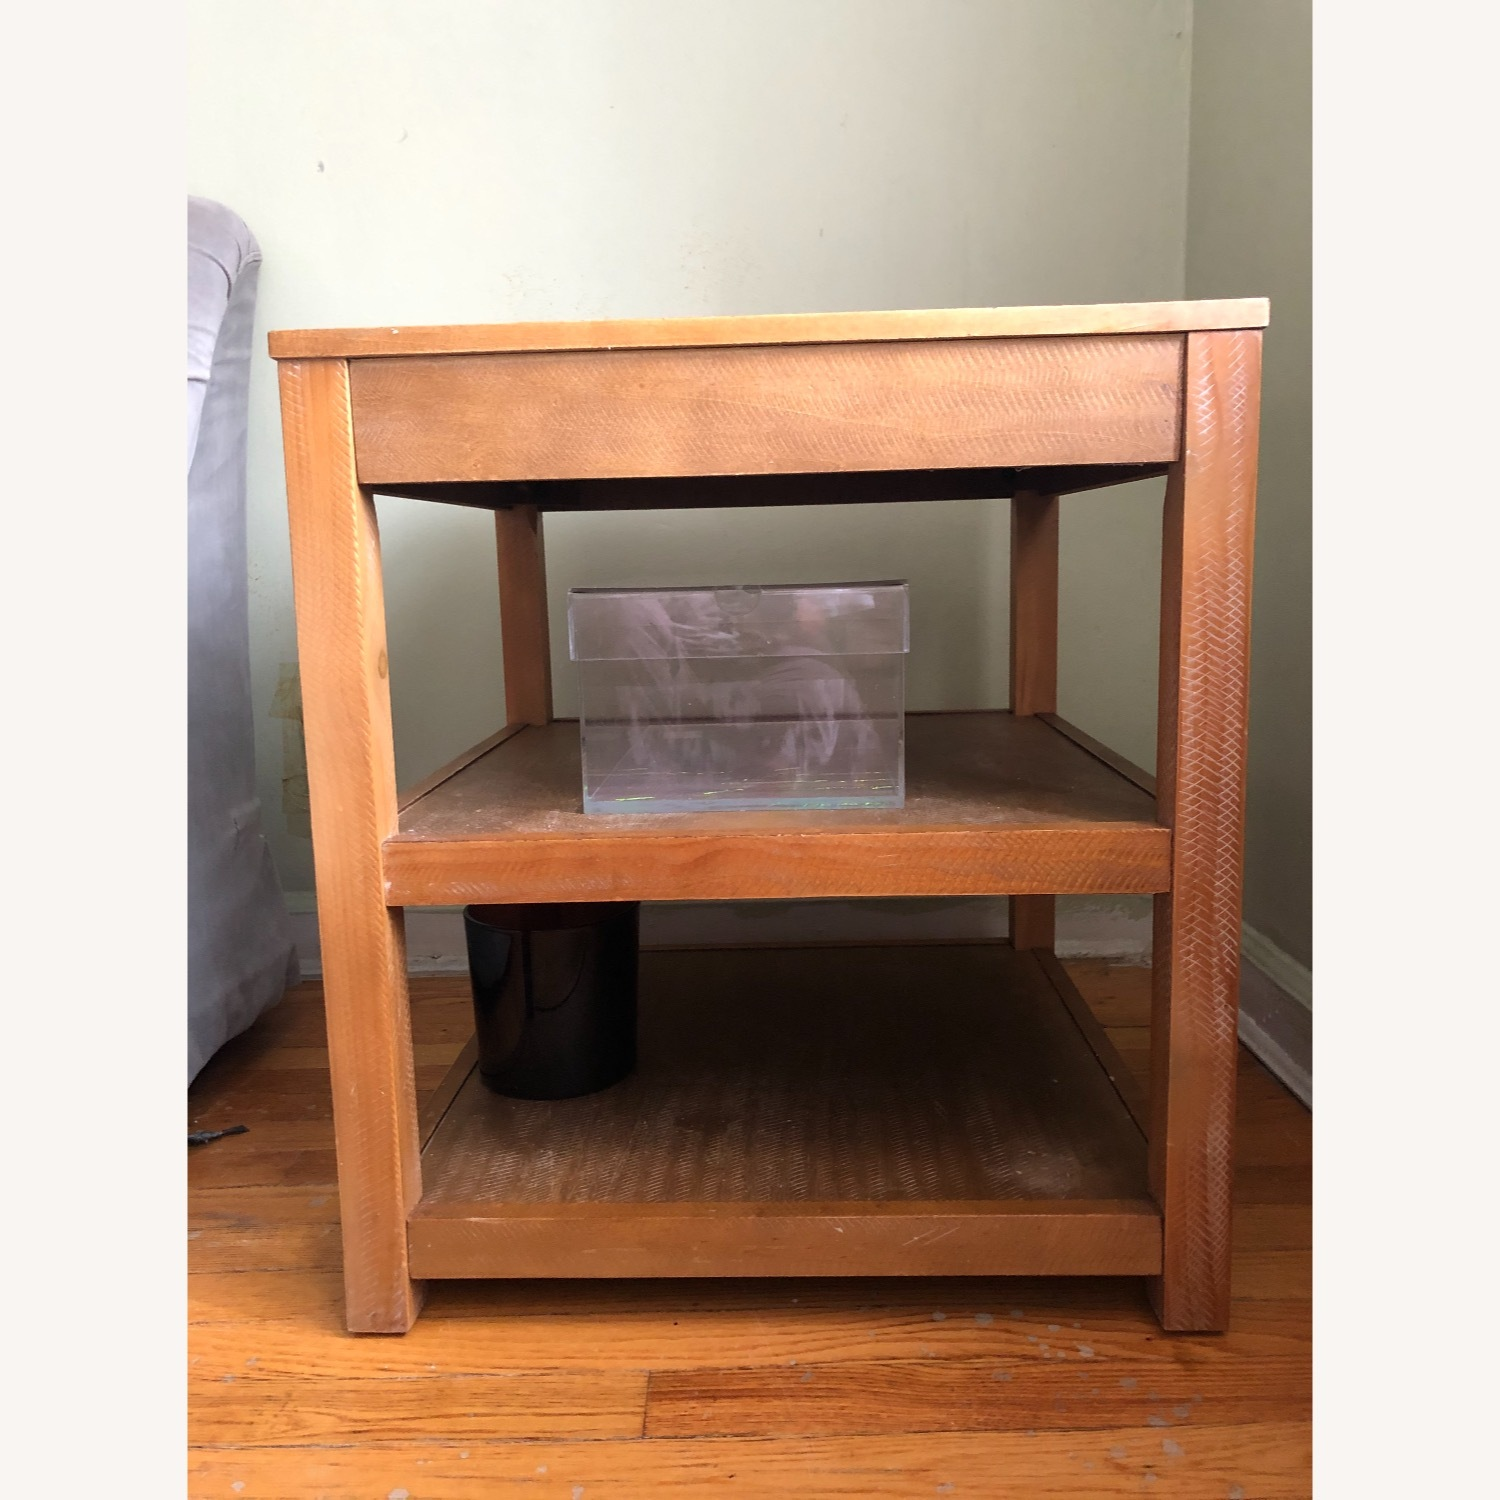 Weathered End Tables - image-1